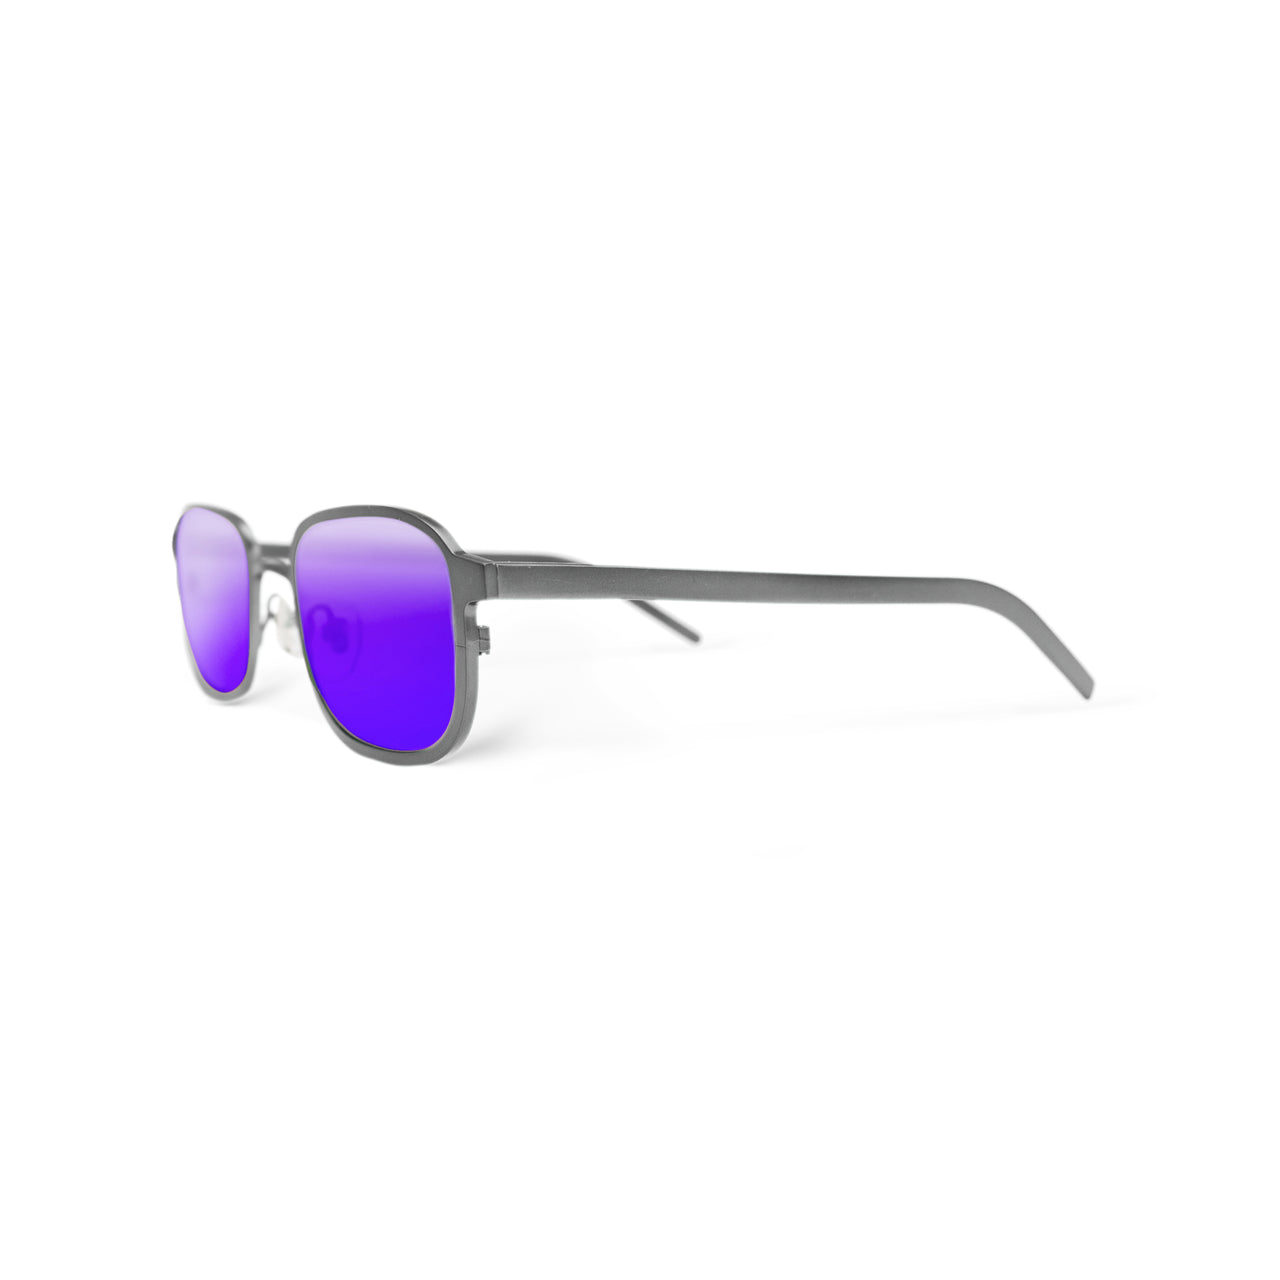 Metal. Brushed Silver. Moonlight Mirror Lens. - BLYSZAK eyewear eyewear - eyewear, optical, sunglasses